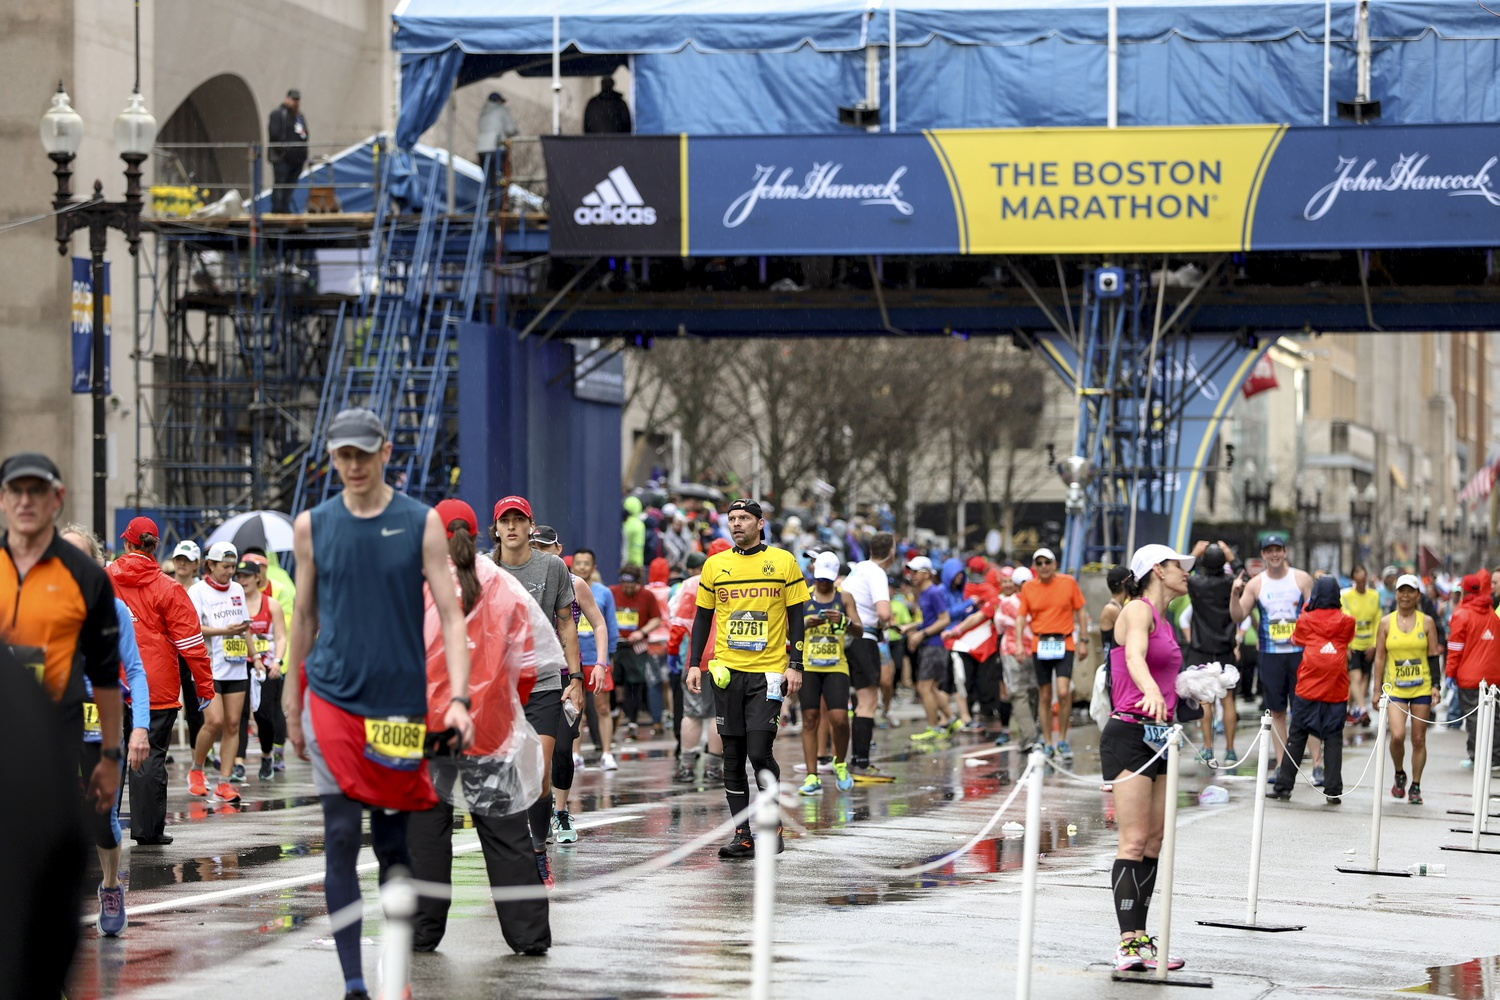 After finishing the race in the rain, Boston Marathon runners leave the course on Monday afternoon.